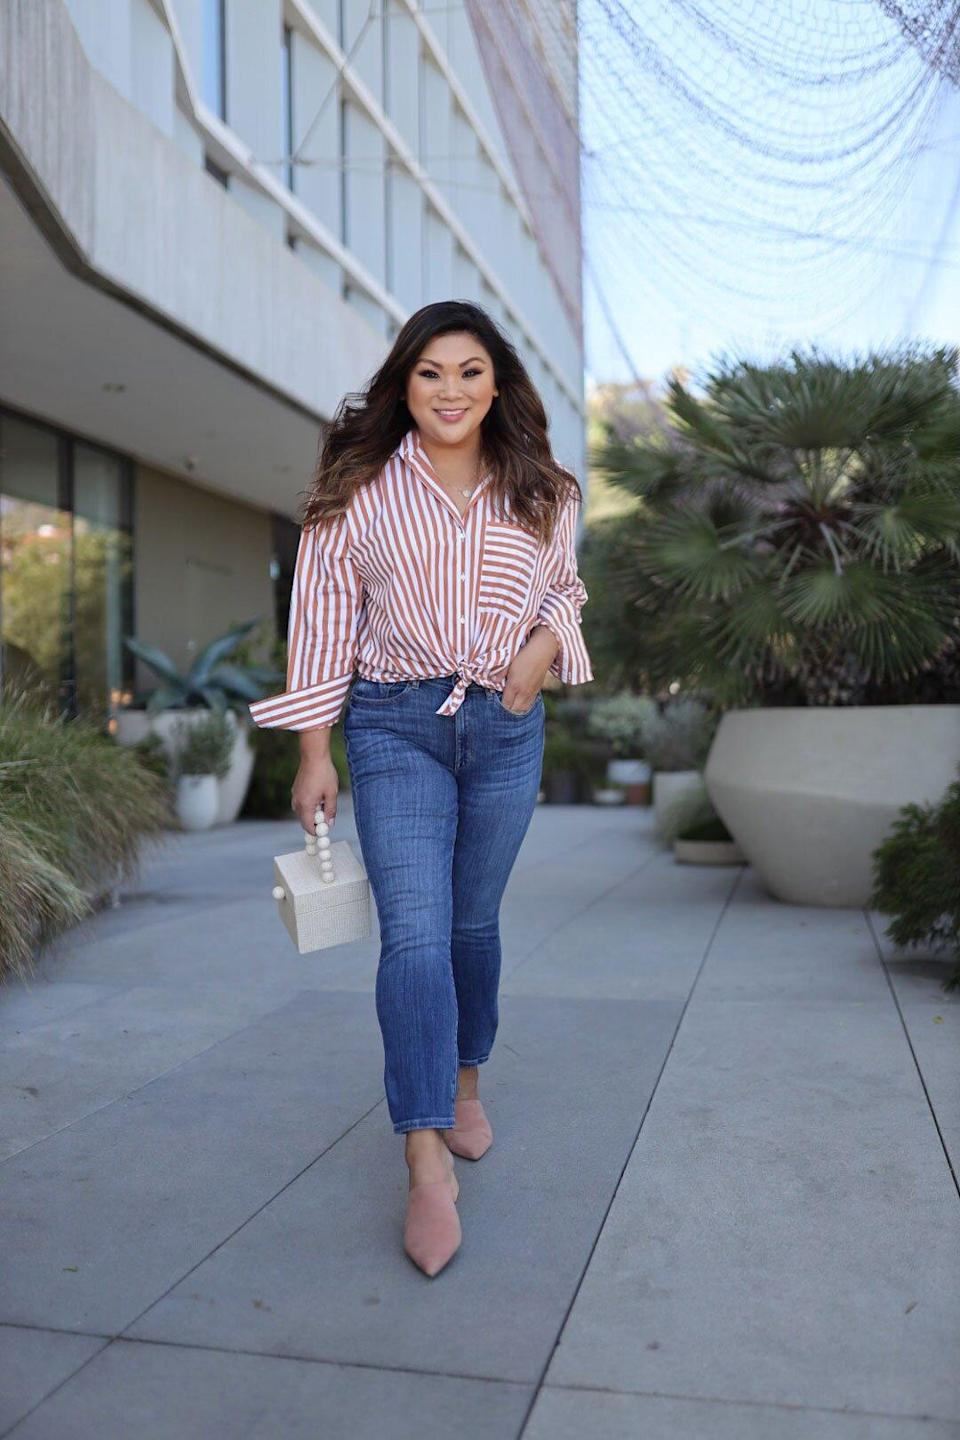 I Tried the Curve-Friendly Jeans With a 3,000 Person Wait List, and Here's My Honest Review